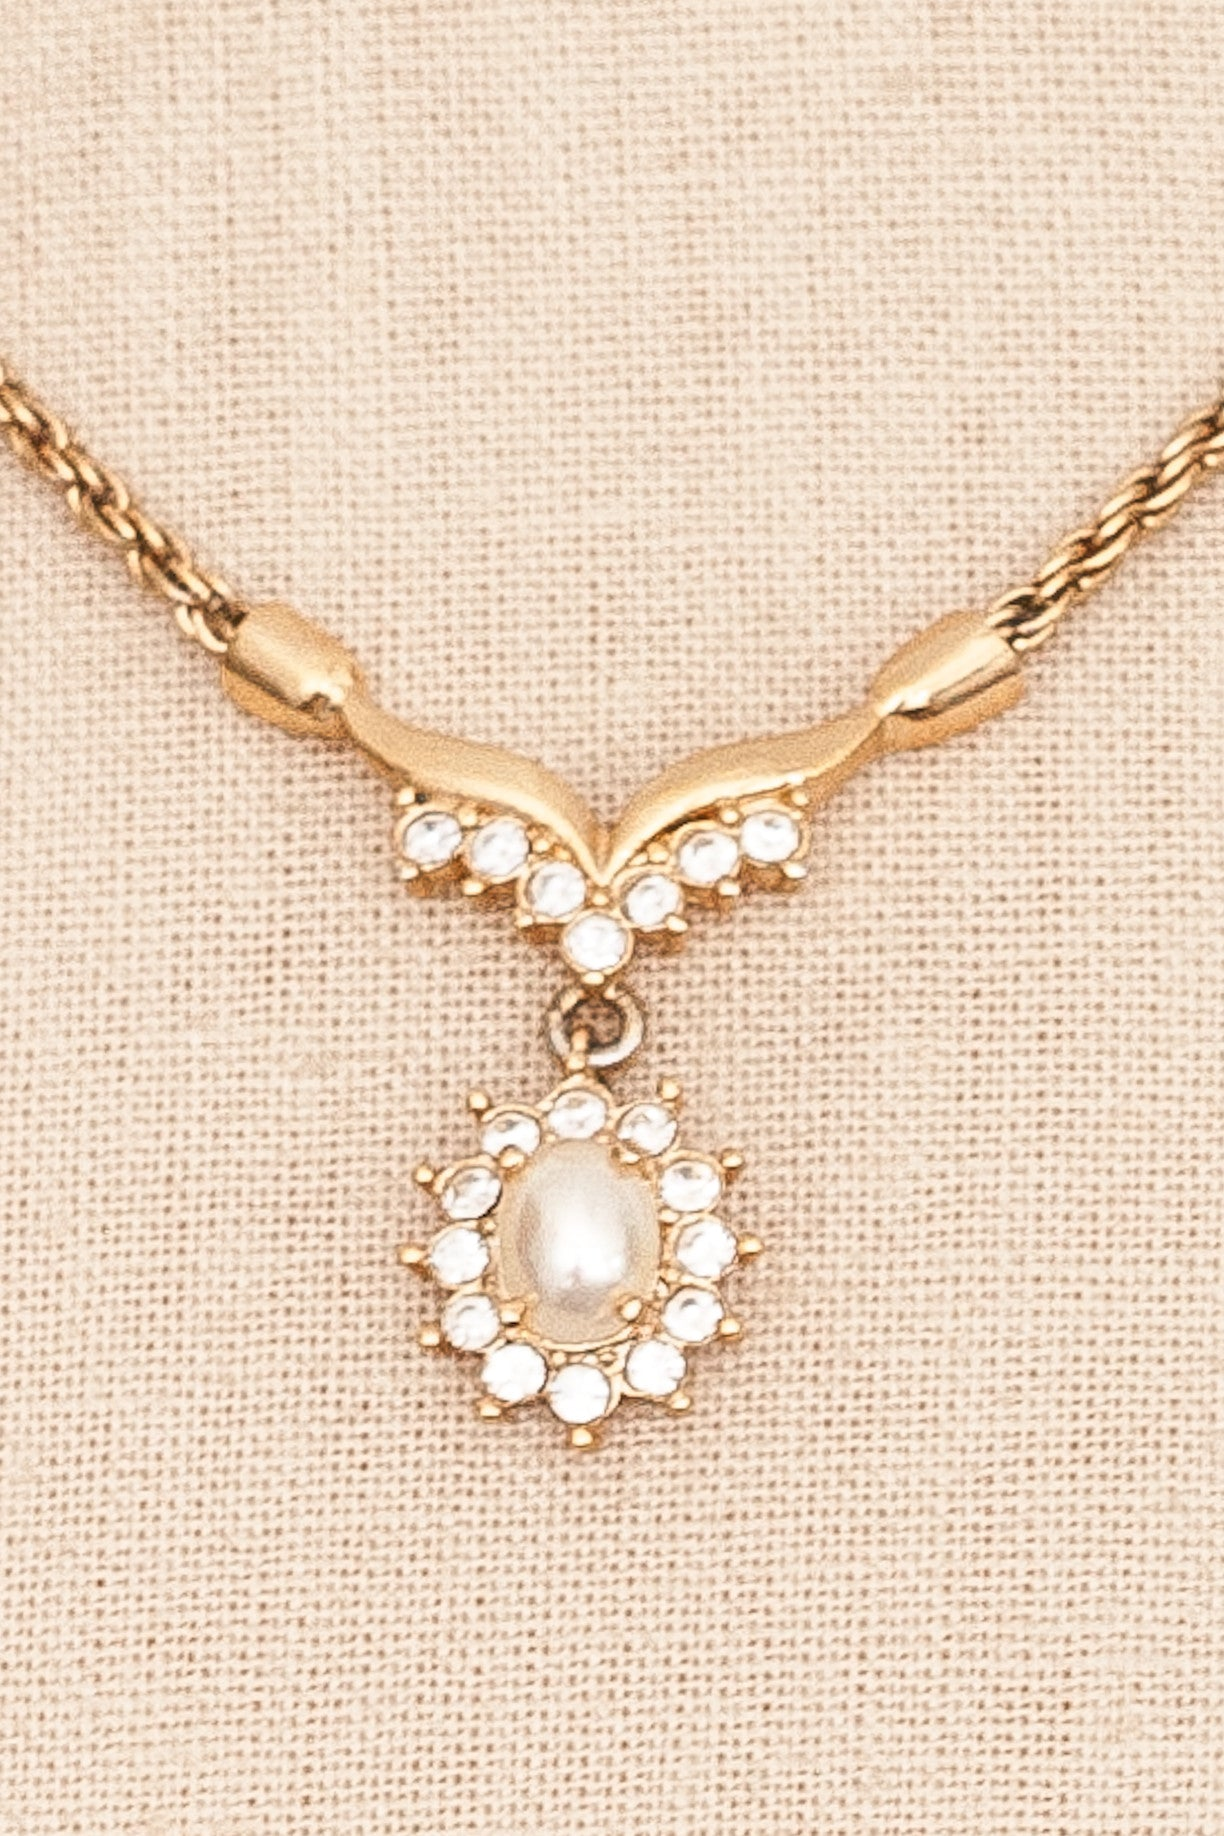 80's__Roman__Pearl Drop Necklace